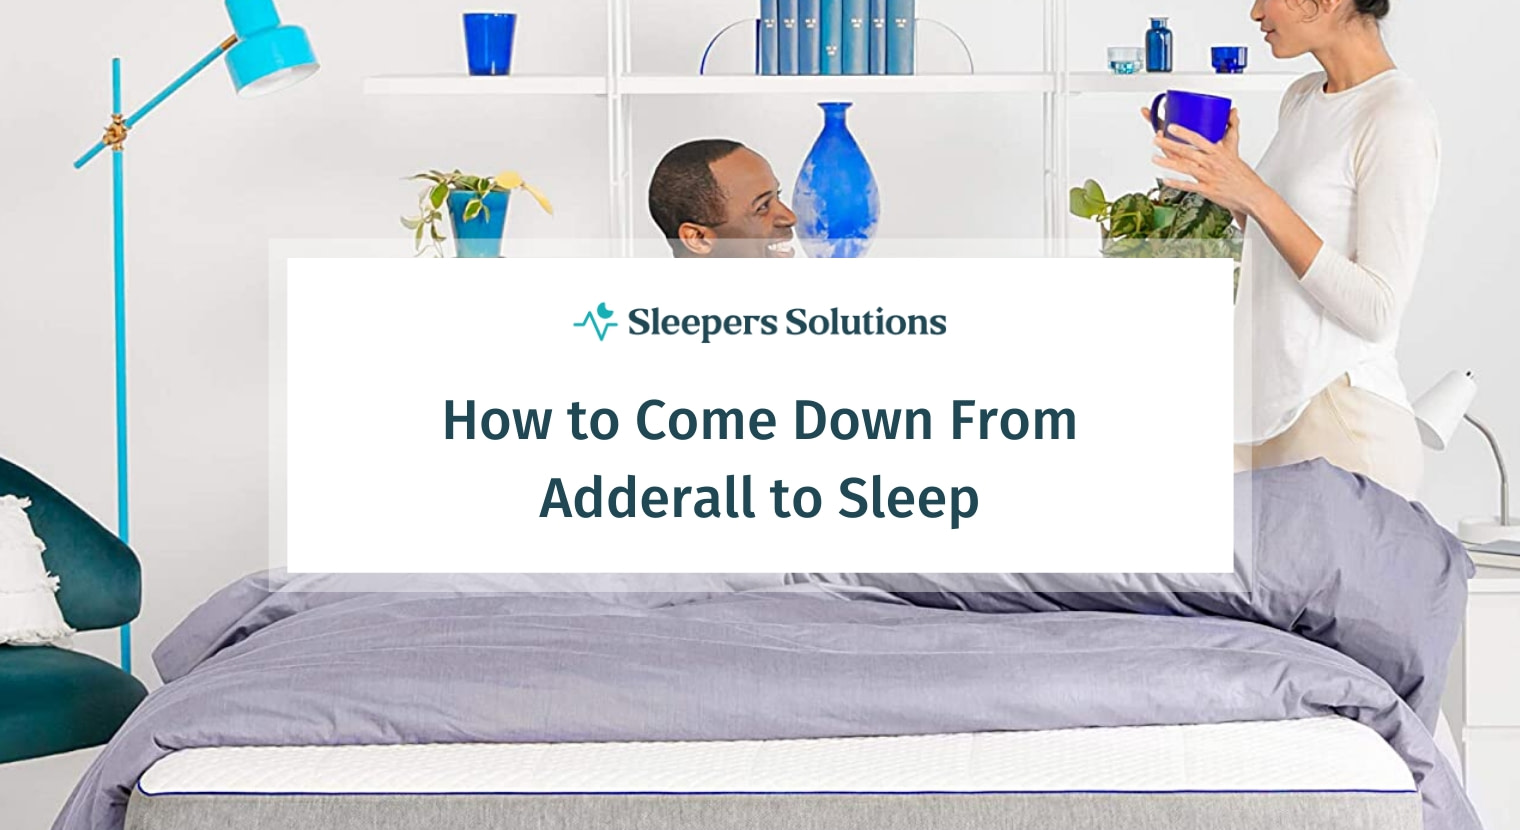 How to Come Down From Adderall to Sleep